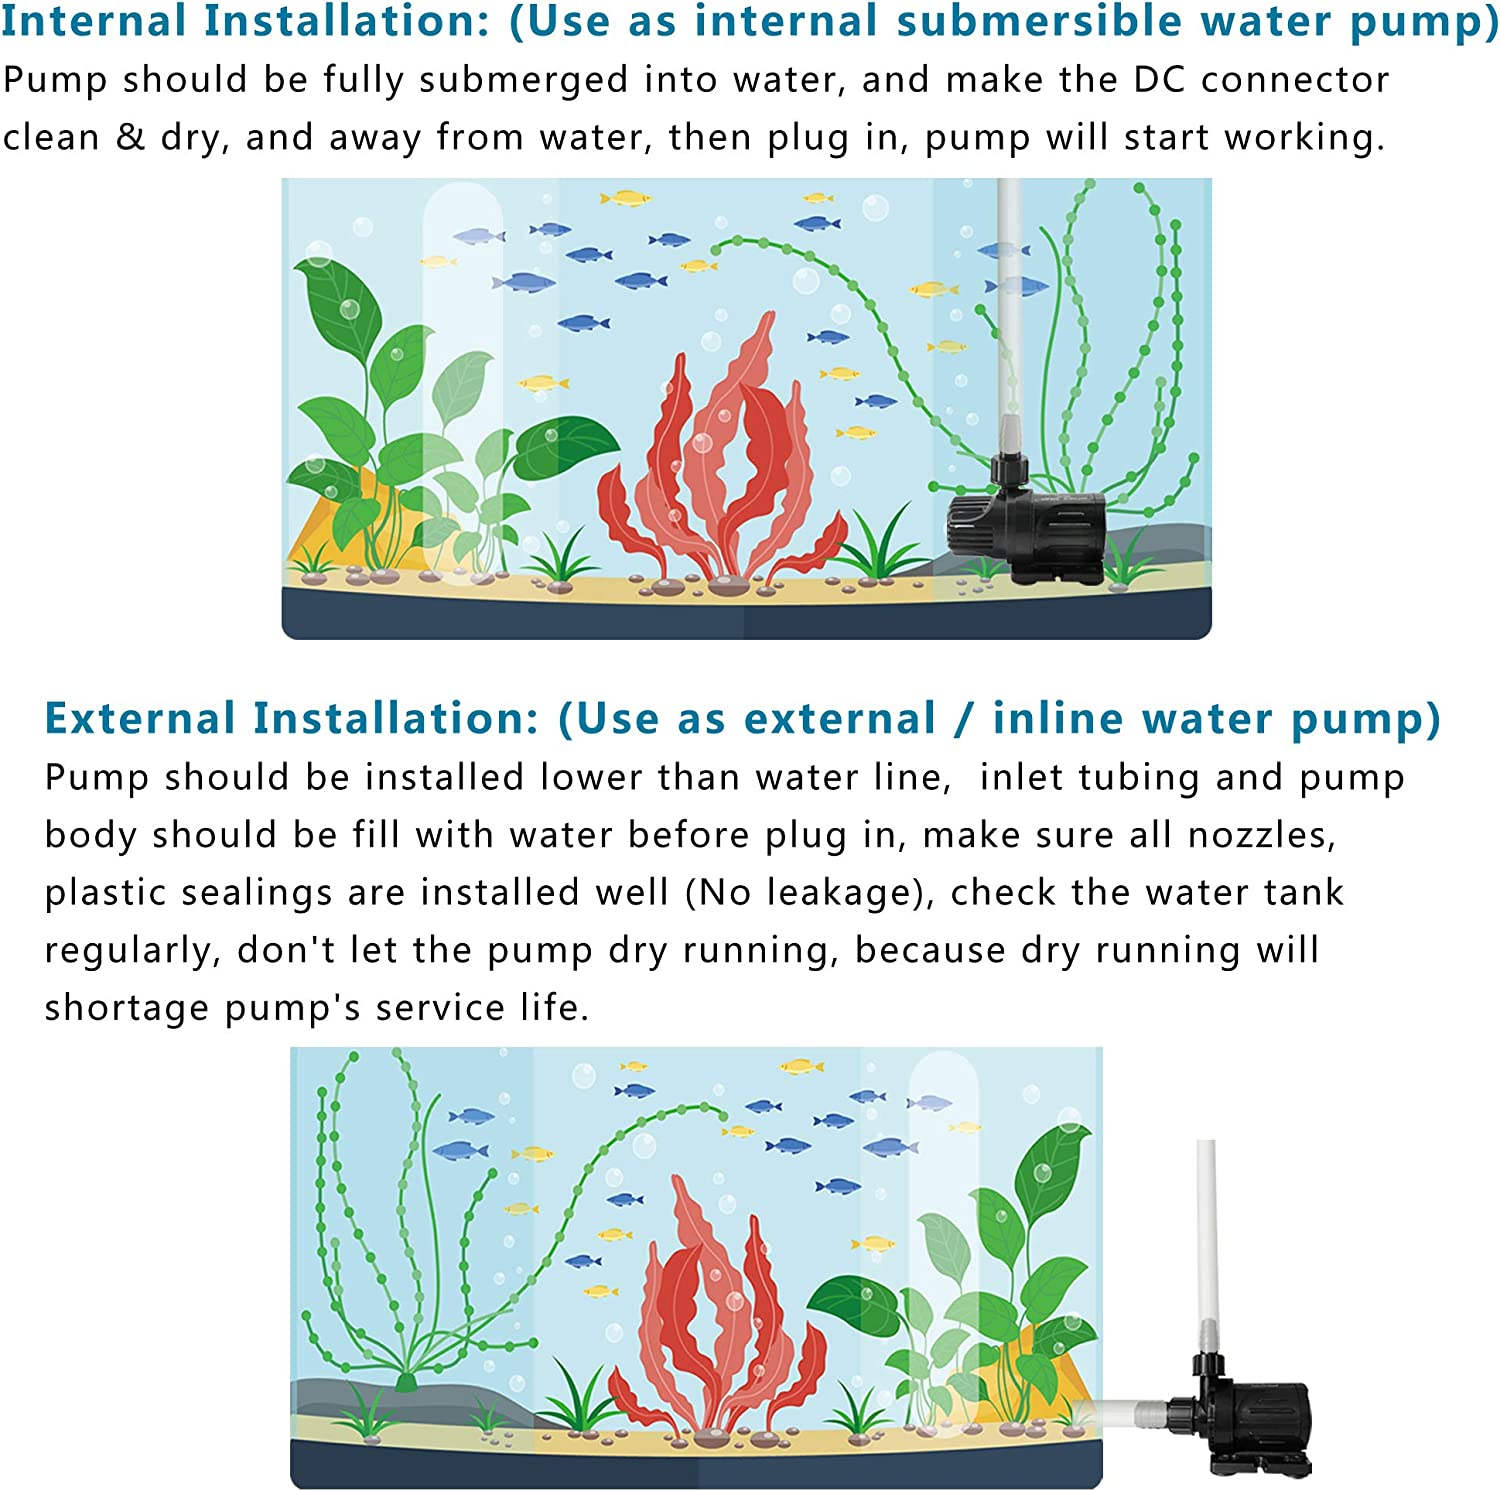 Ponds Hydroponics and Drainage PULACO DC 24V Submersible Water Pump 300 GPH 20 ft Aquariums Fountains Ultra Quiet Fountain Pump for Fish Tanks Safety /& Energy Saving, Anti-Electric Shock